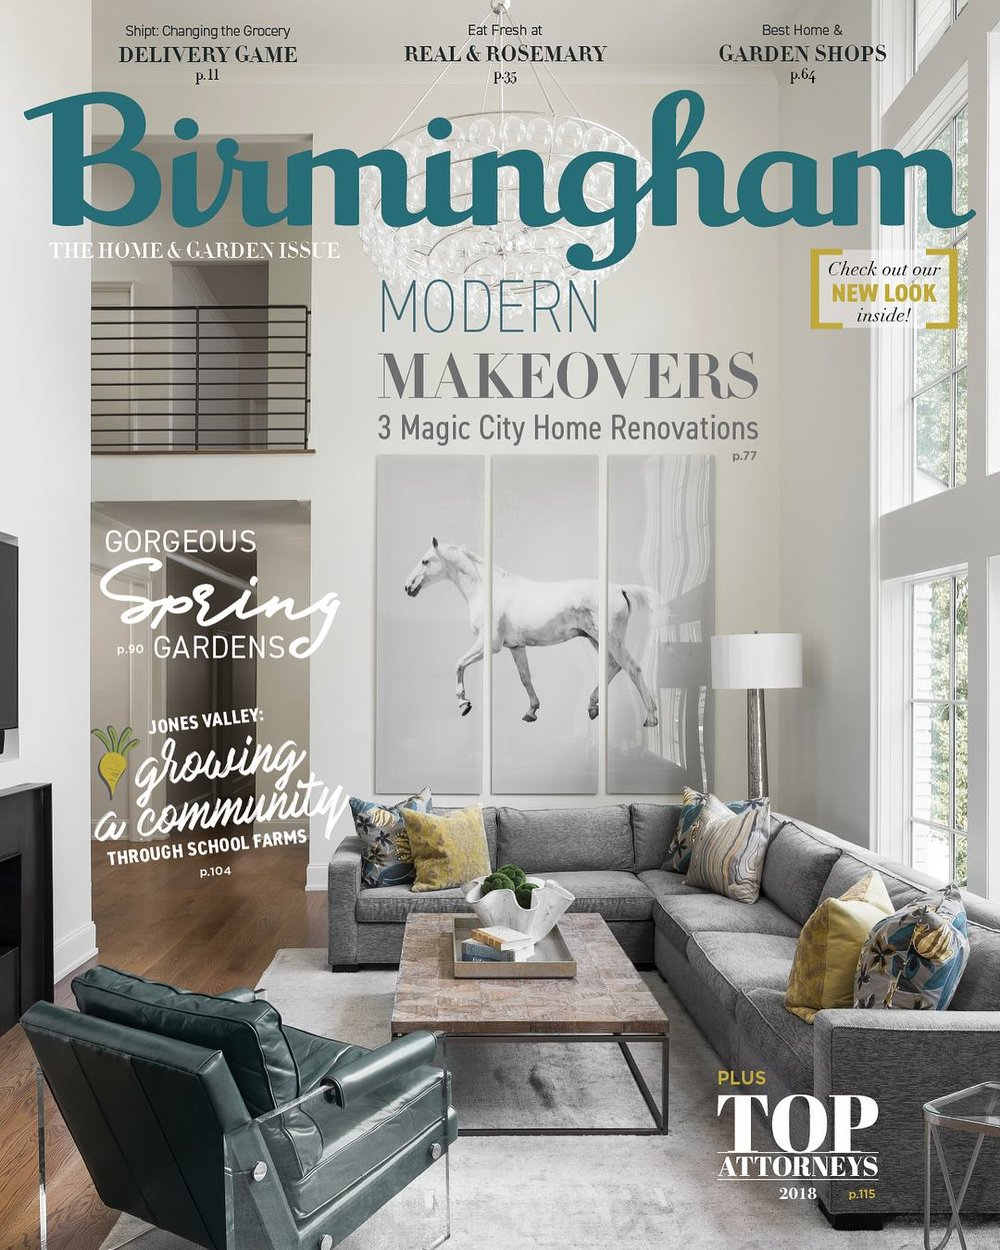 Cover of newly redesigned Birmingham Magazine. The Home & Garden Issue for 2018. Project photographed for Adams & Gerndt Design Studio.